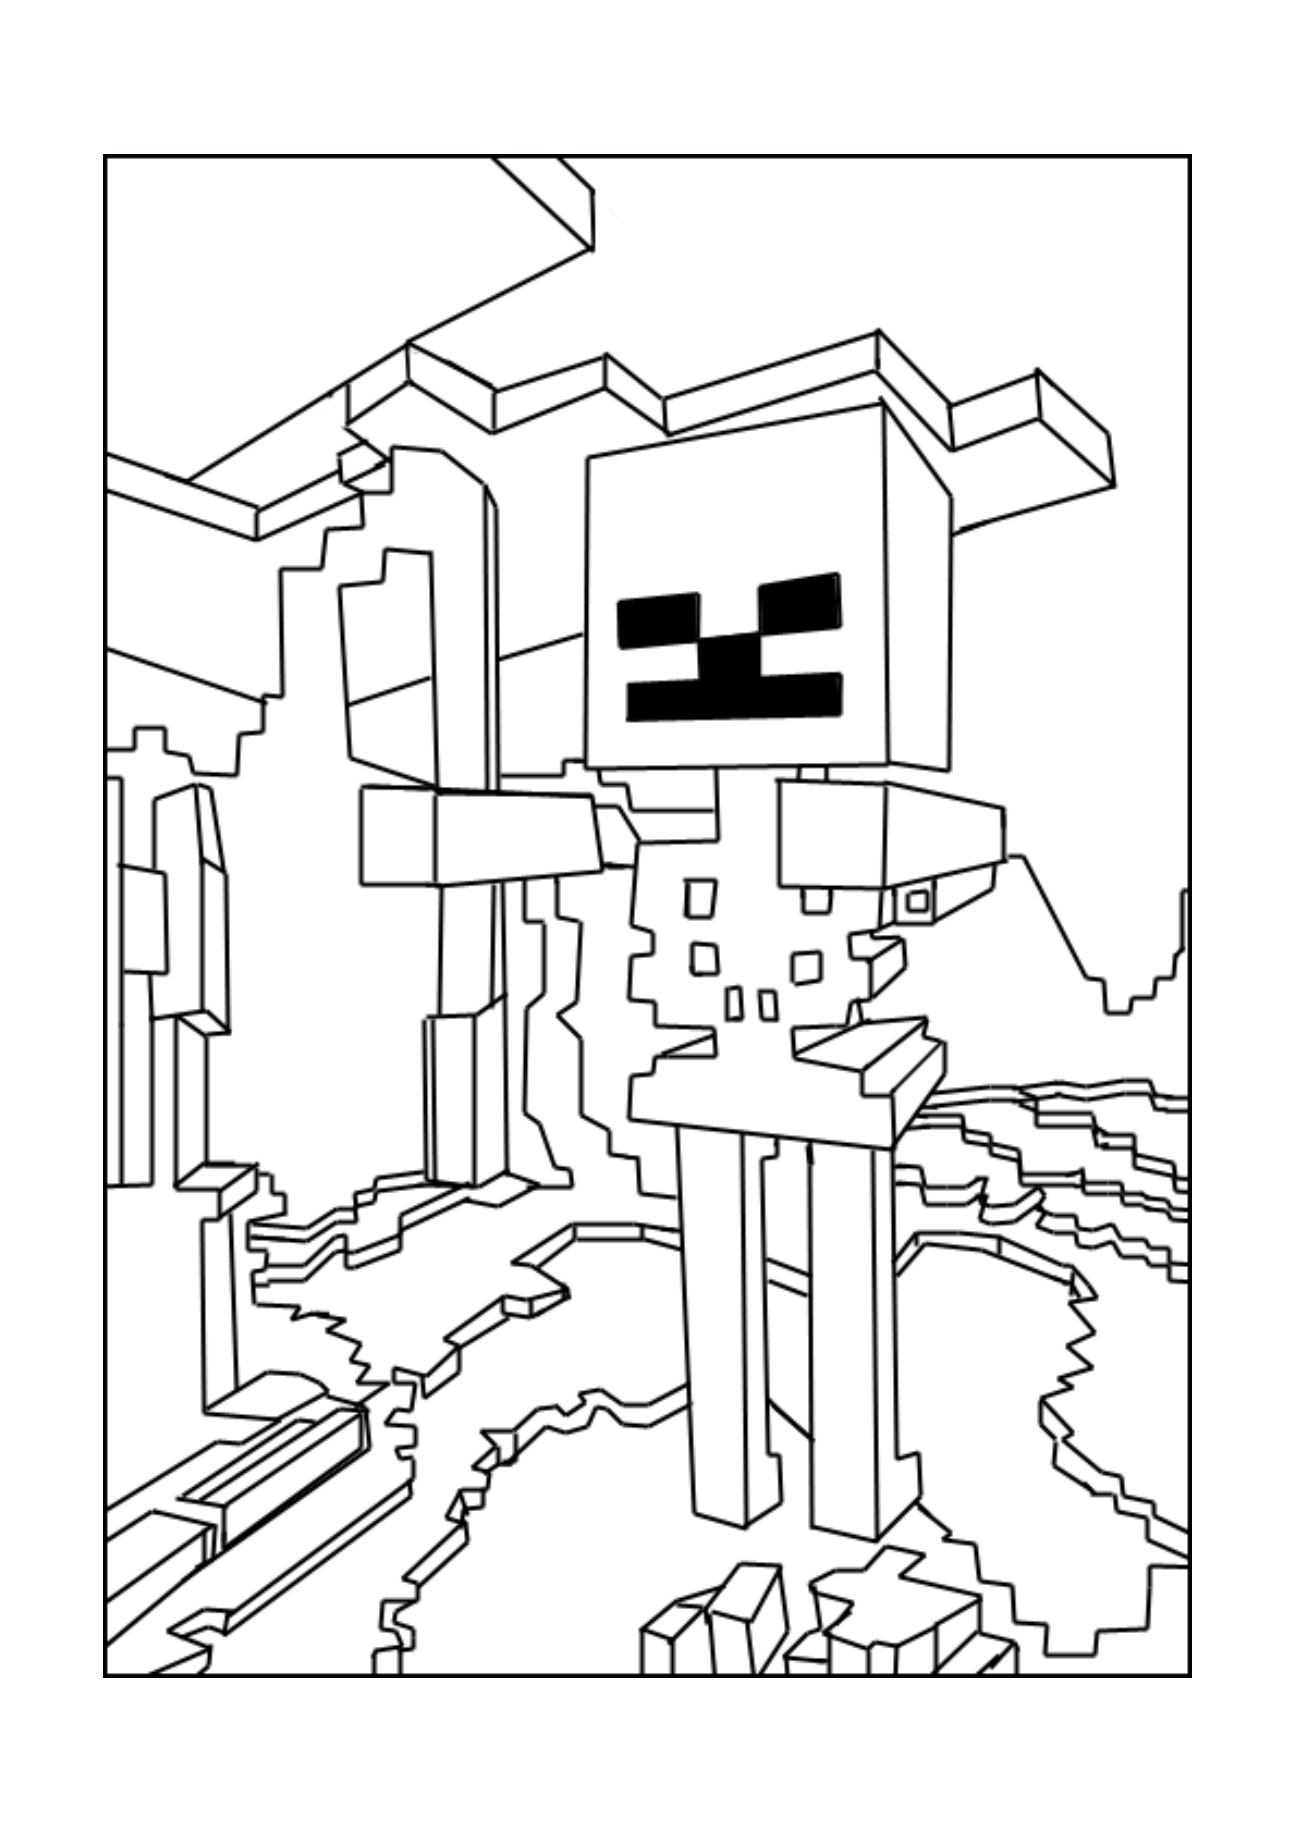 minecraft colouring pages free minecraft iron golem coloring pages at getdrawings free colouring free minecraft pages